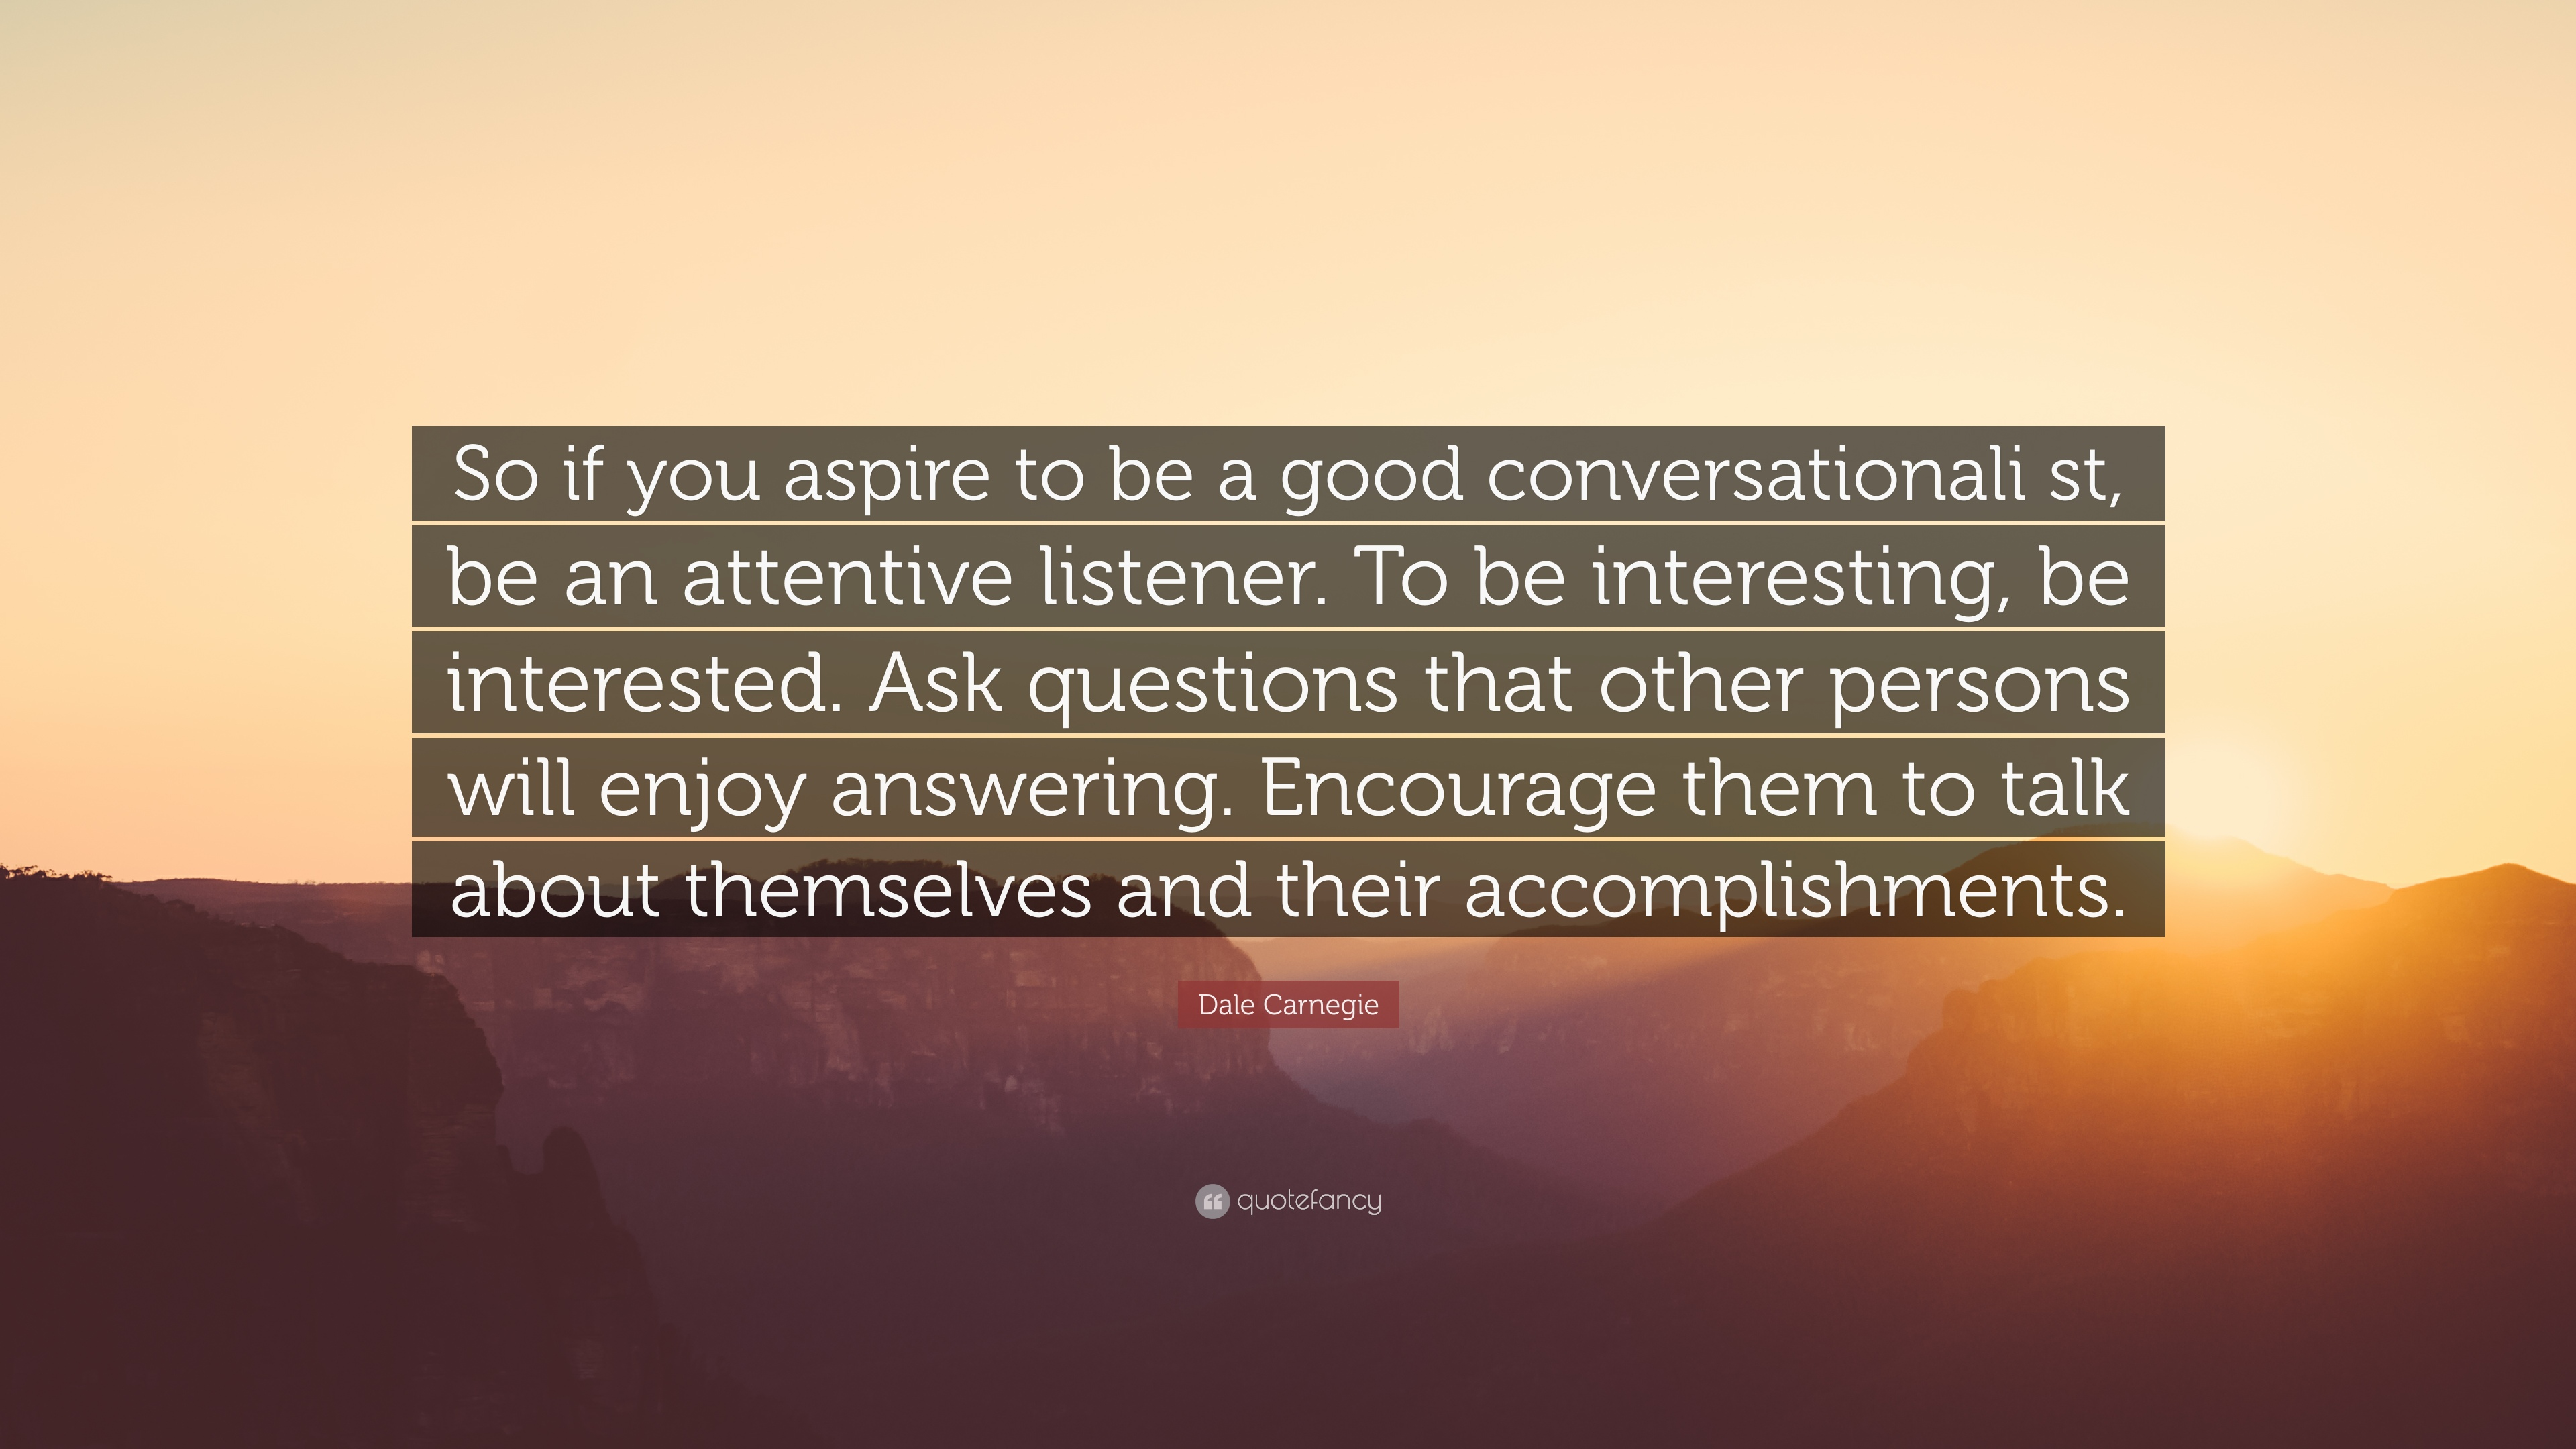 Dale Carnegie Quote: U201cSo If You Aspire To Be A Good Conversationali St,